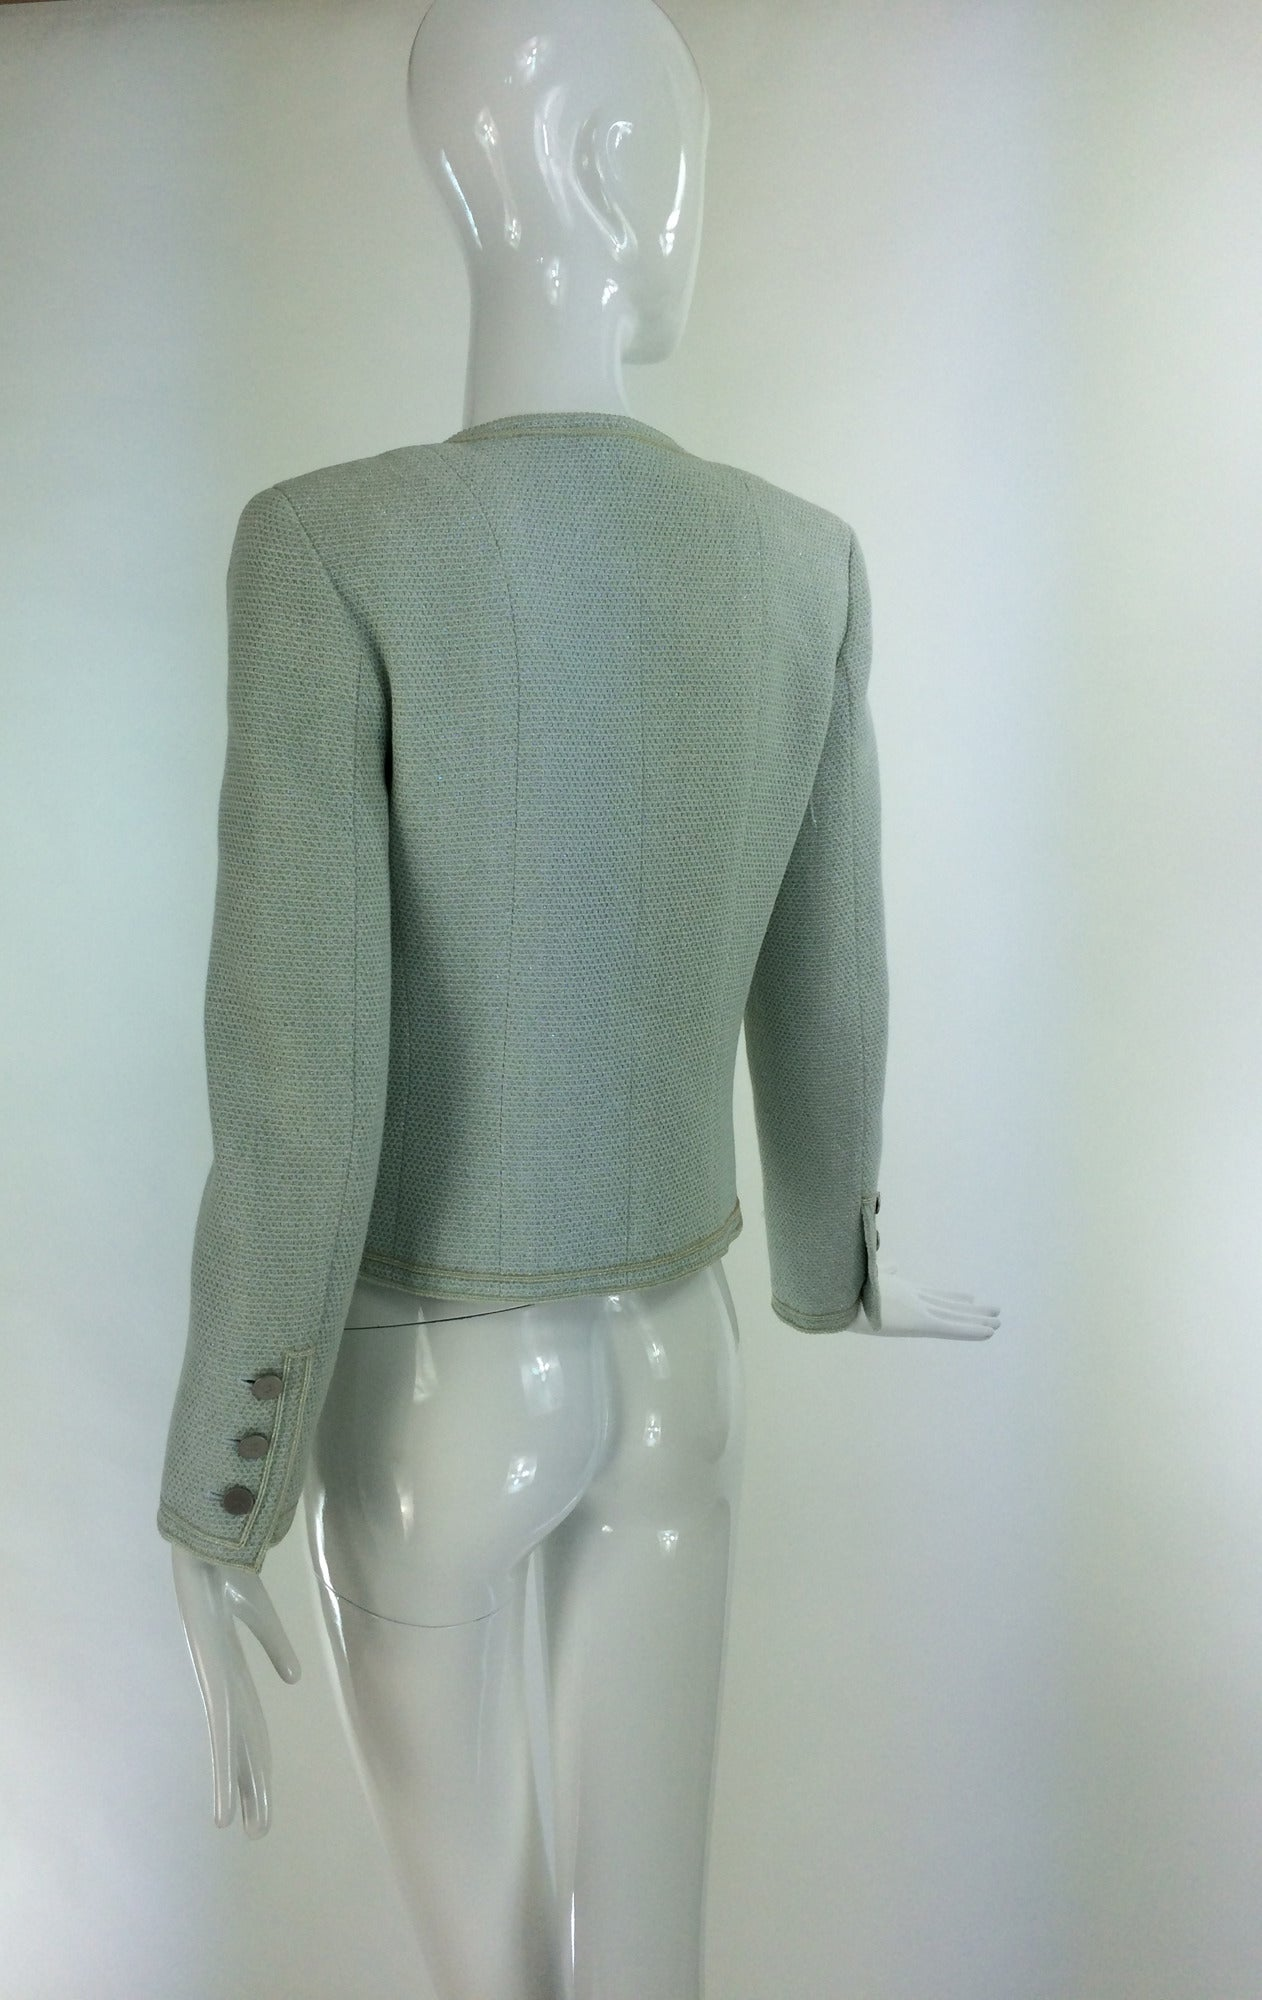 Chanel mint green glitter tweed cropped jacket 2000 In Excellent Condition For Sale In West Palm Beach, FL